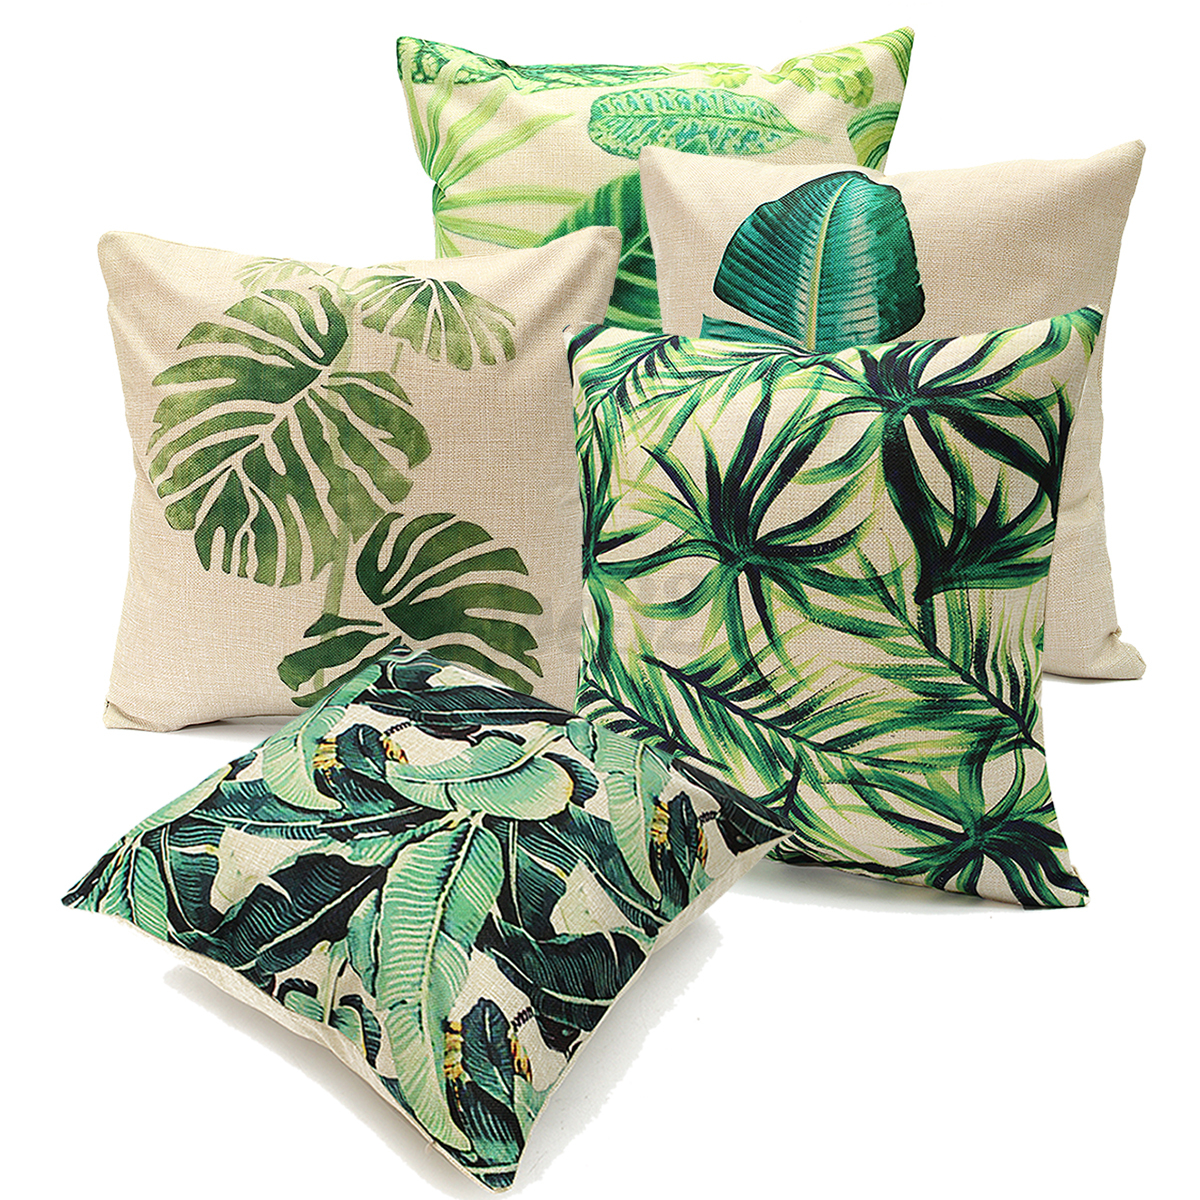 green leaf cotton linen cushion cover throw pillow case. Black Bedroom Furniture Sets. Home Design Ideas